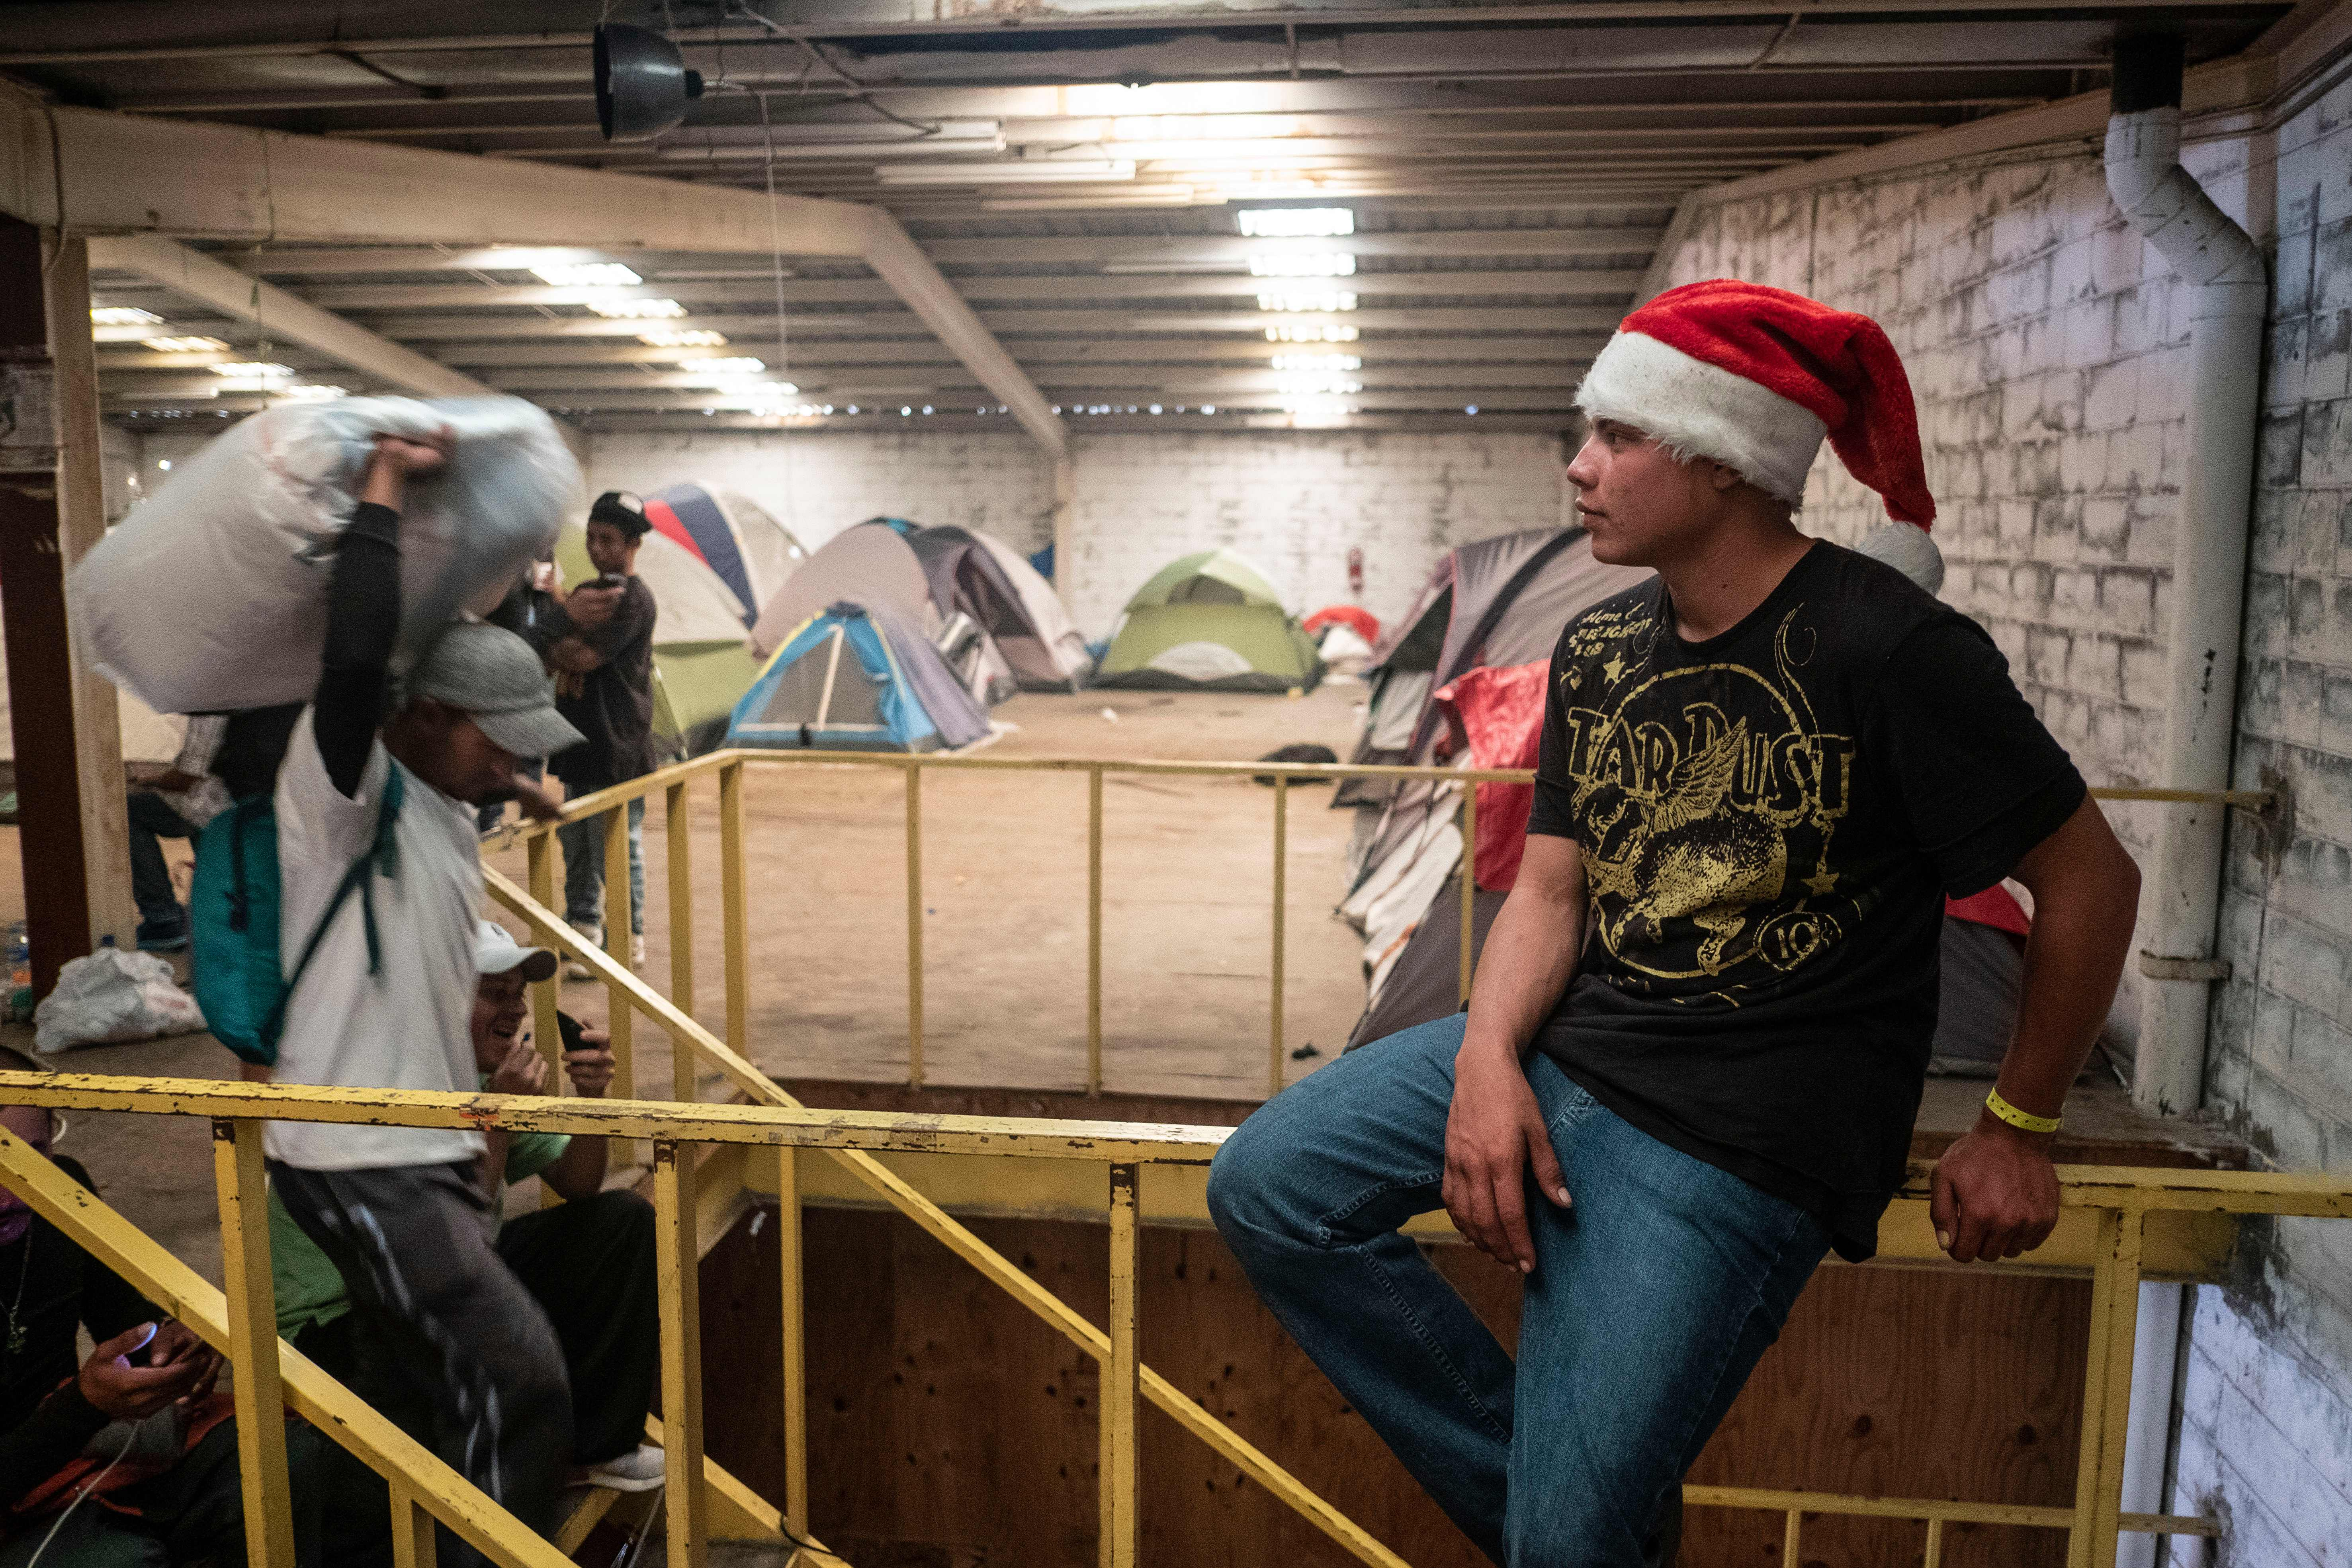 Young men, part of the Central American migrants traveling to the United States, are seen on Christmas eve at a temporary shelter downtown Tijuana, Baja California state, Mexico on December 24, 2018. (Photo credit should read GUILLERMO ARIAS/AFP/Getty Images)